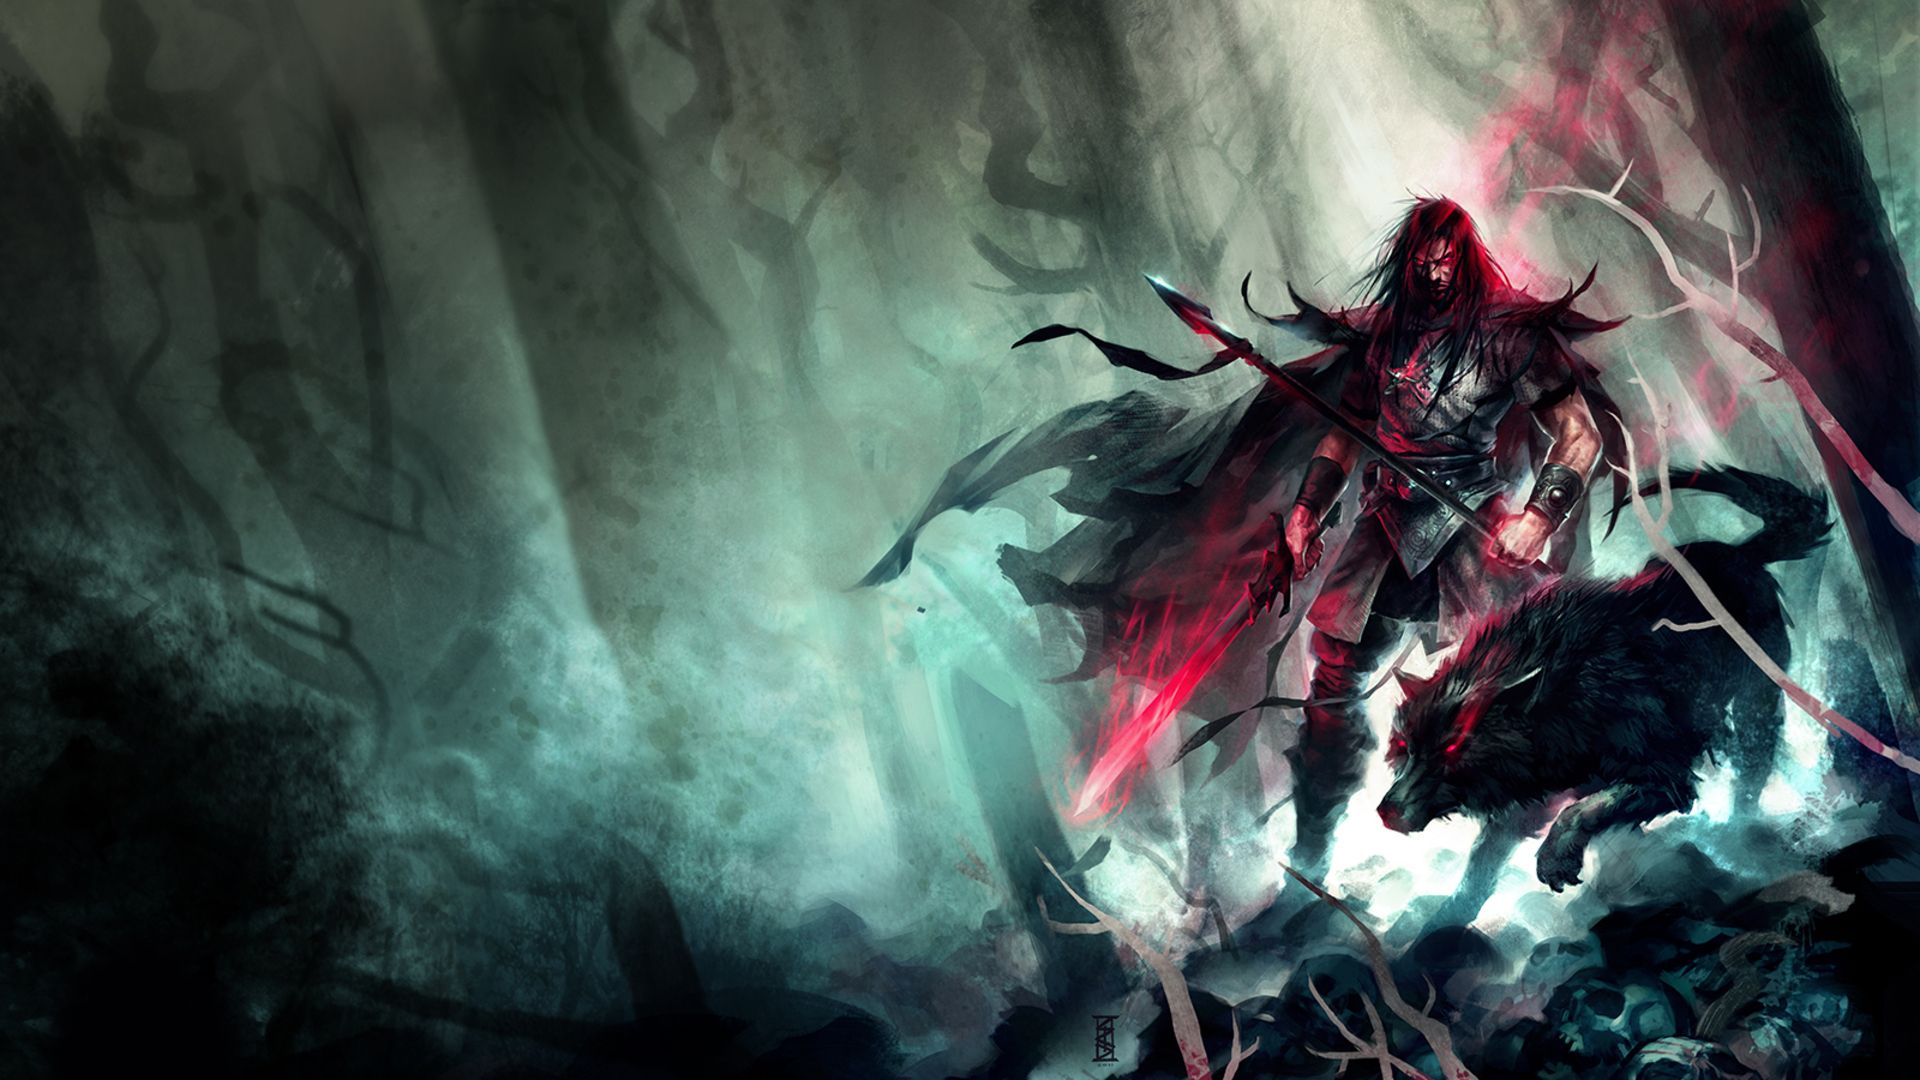 1920x1080 Free download Warrior Wallpaper Picture Image [1920x1080 ...